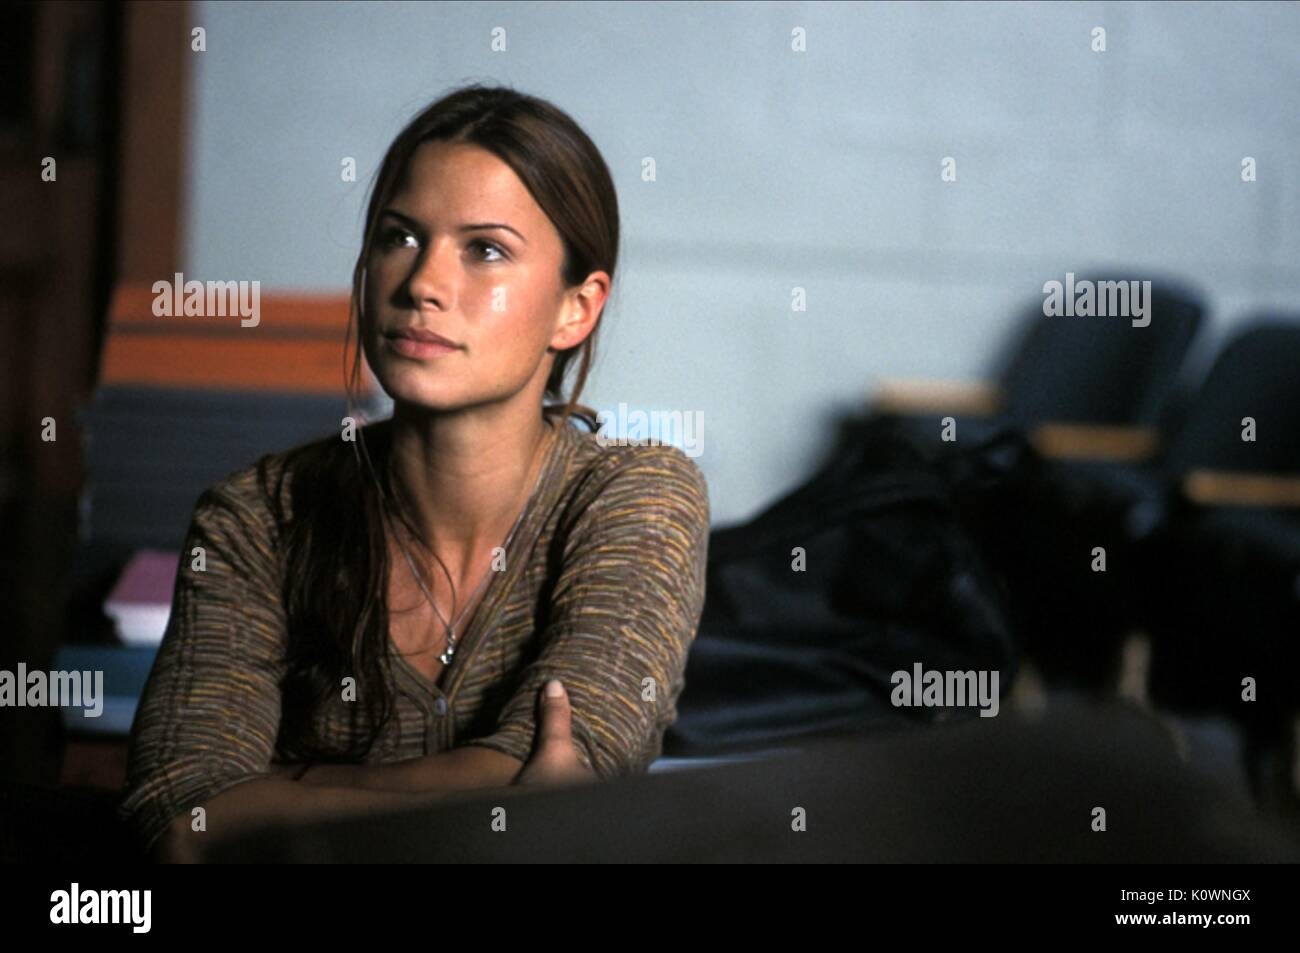 RHONA MITRA THE LIFE OF DAVID GALE (2003) - Stock Image